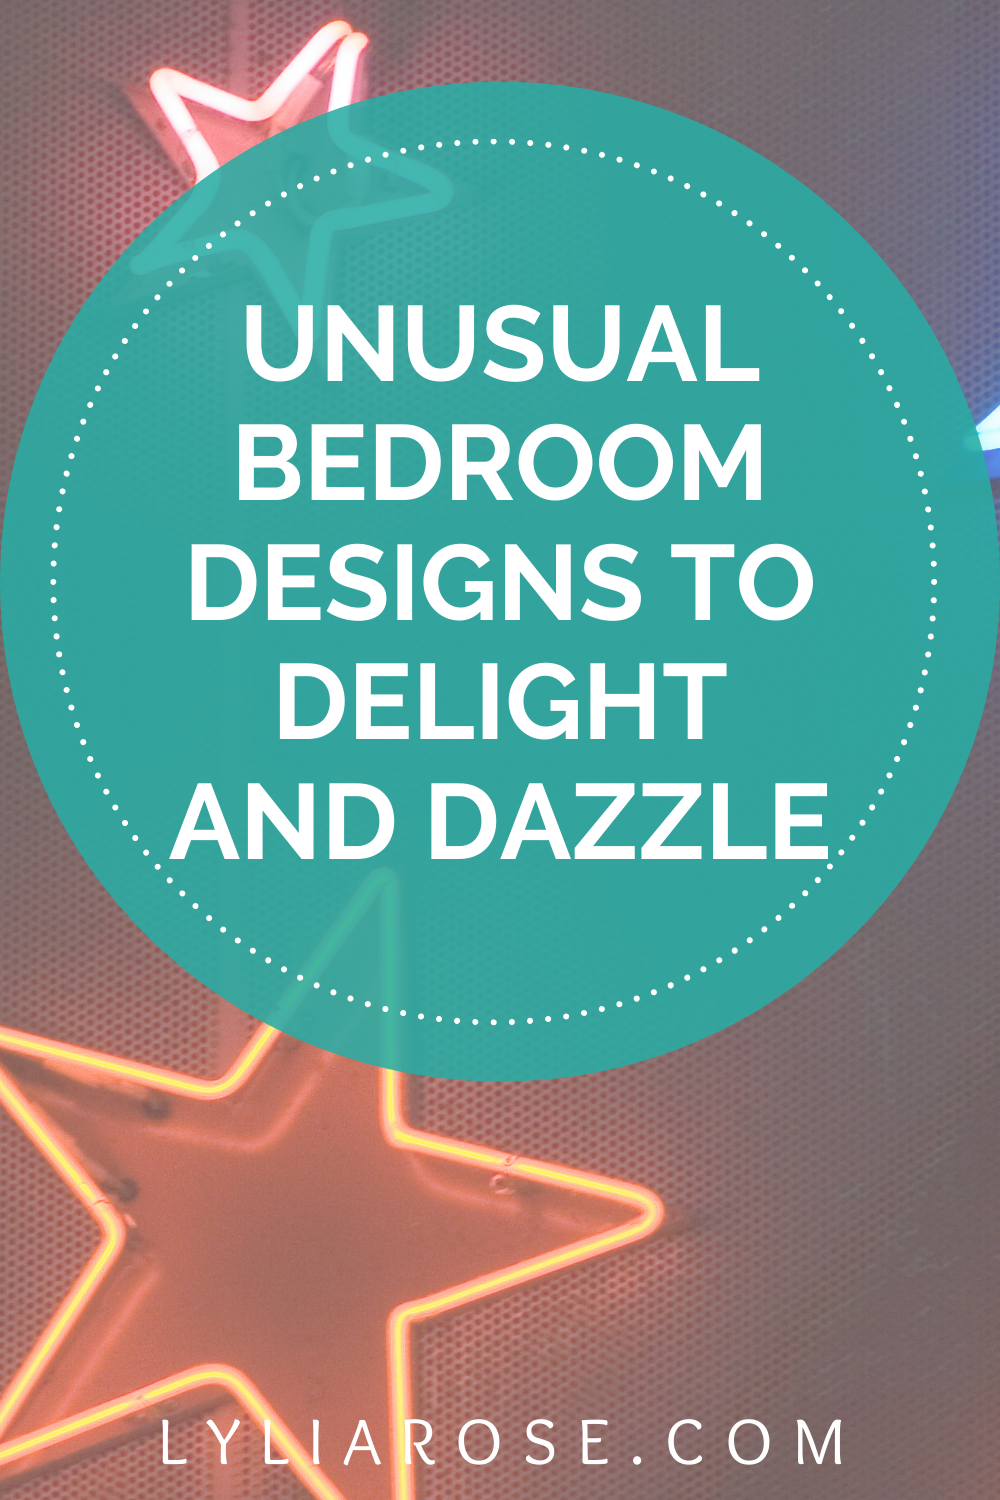 Unusual bedroom designs to delight and dazzle (1)